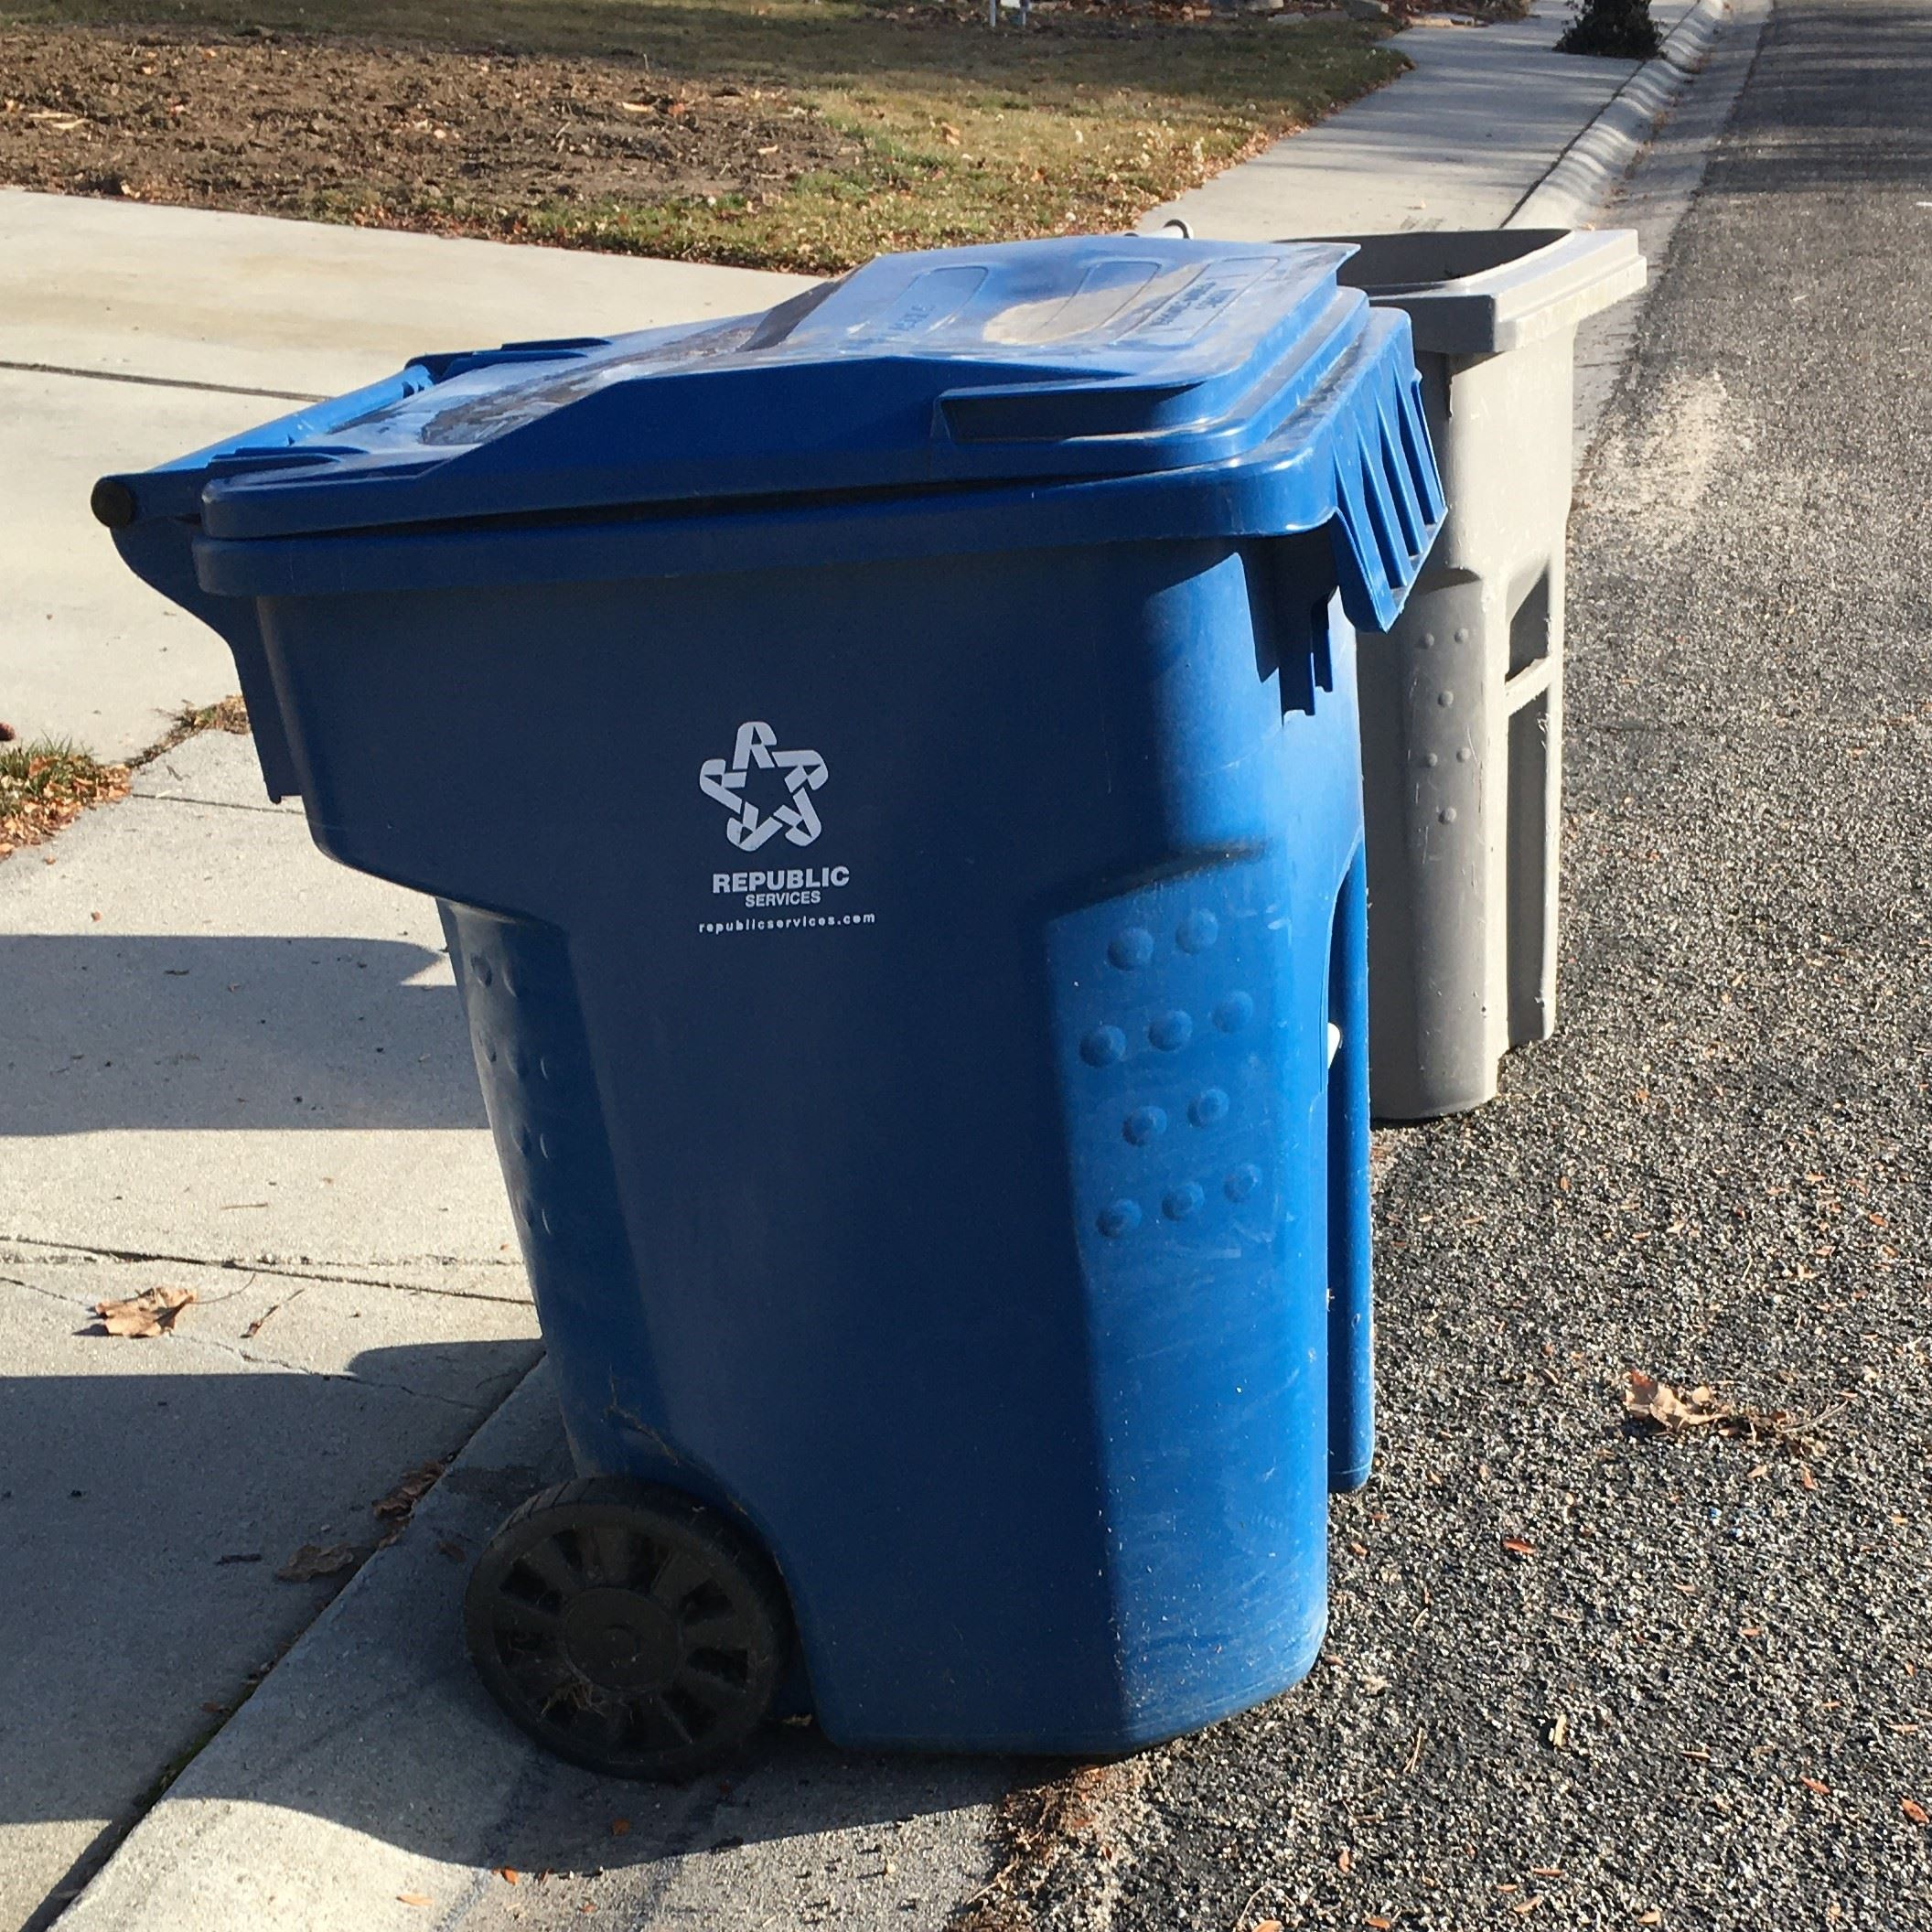 republic services trash can on a street in Eagle